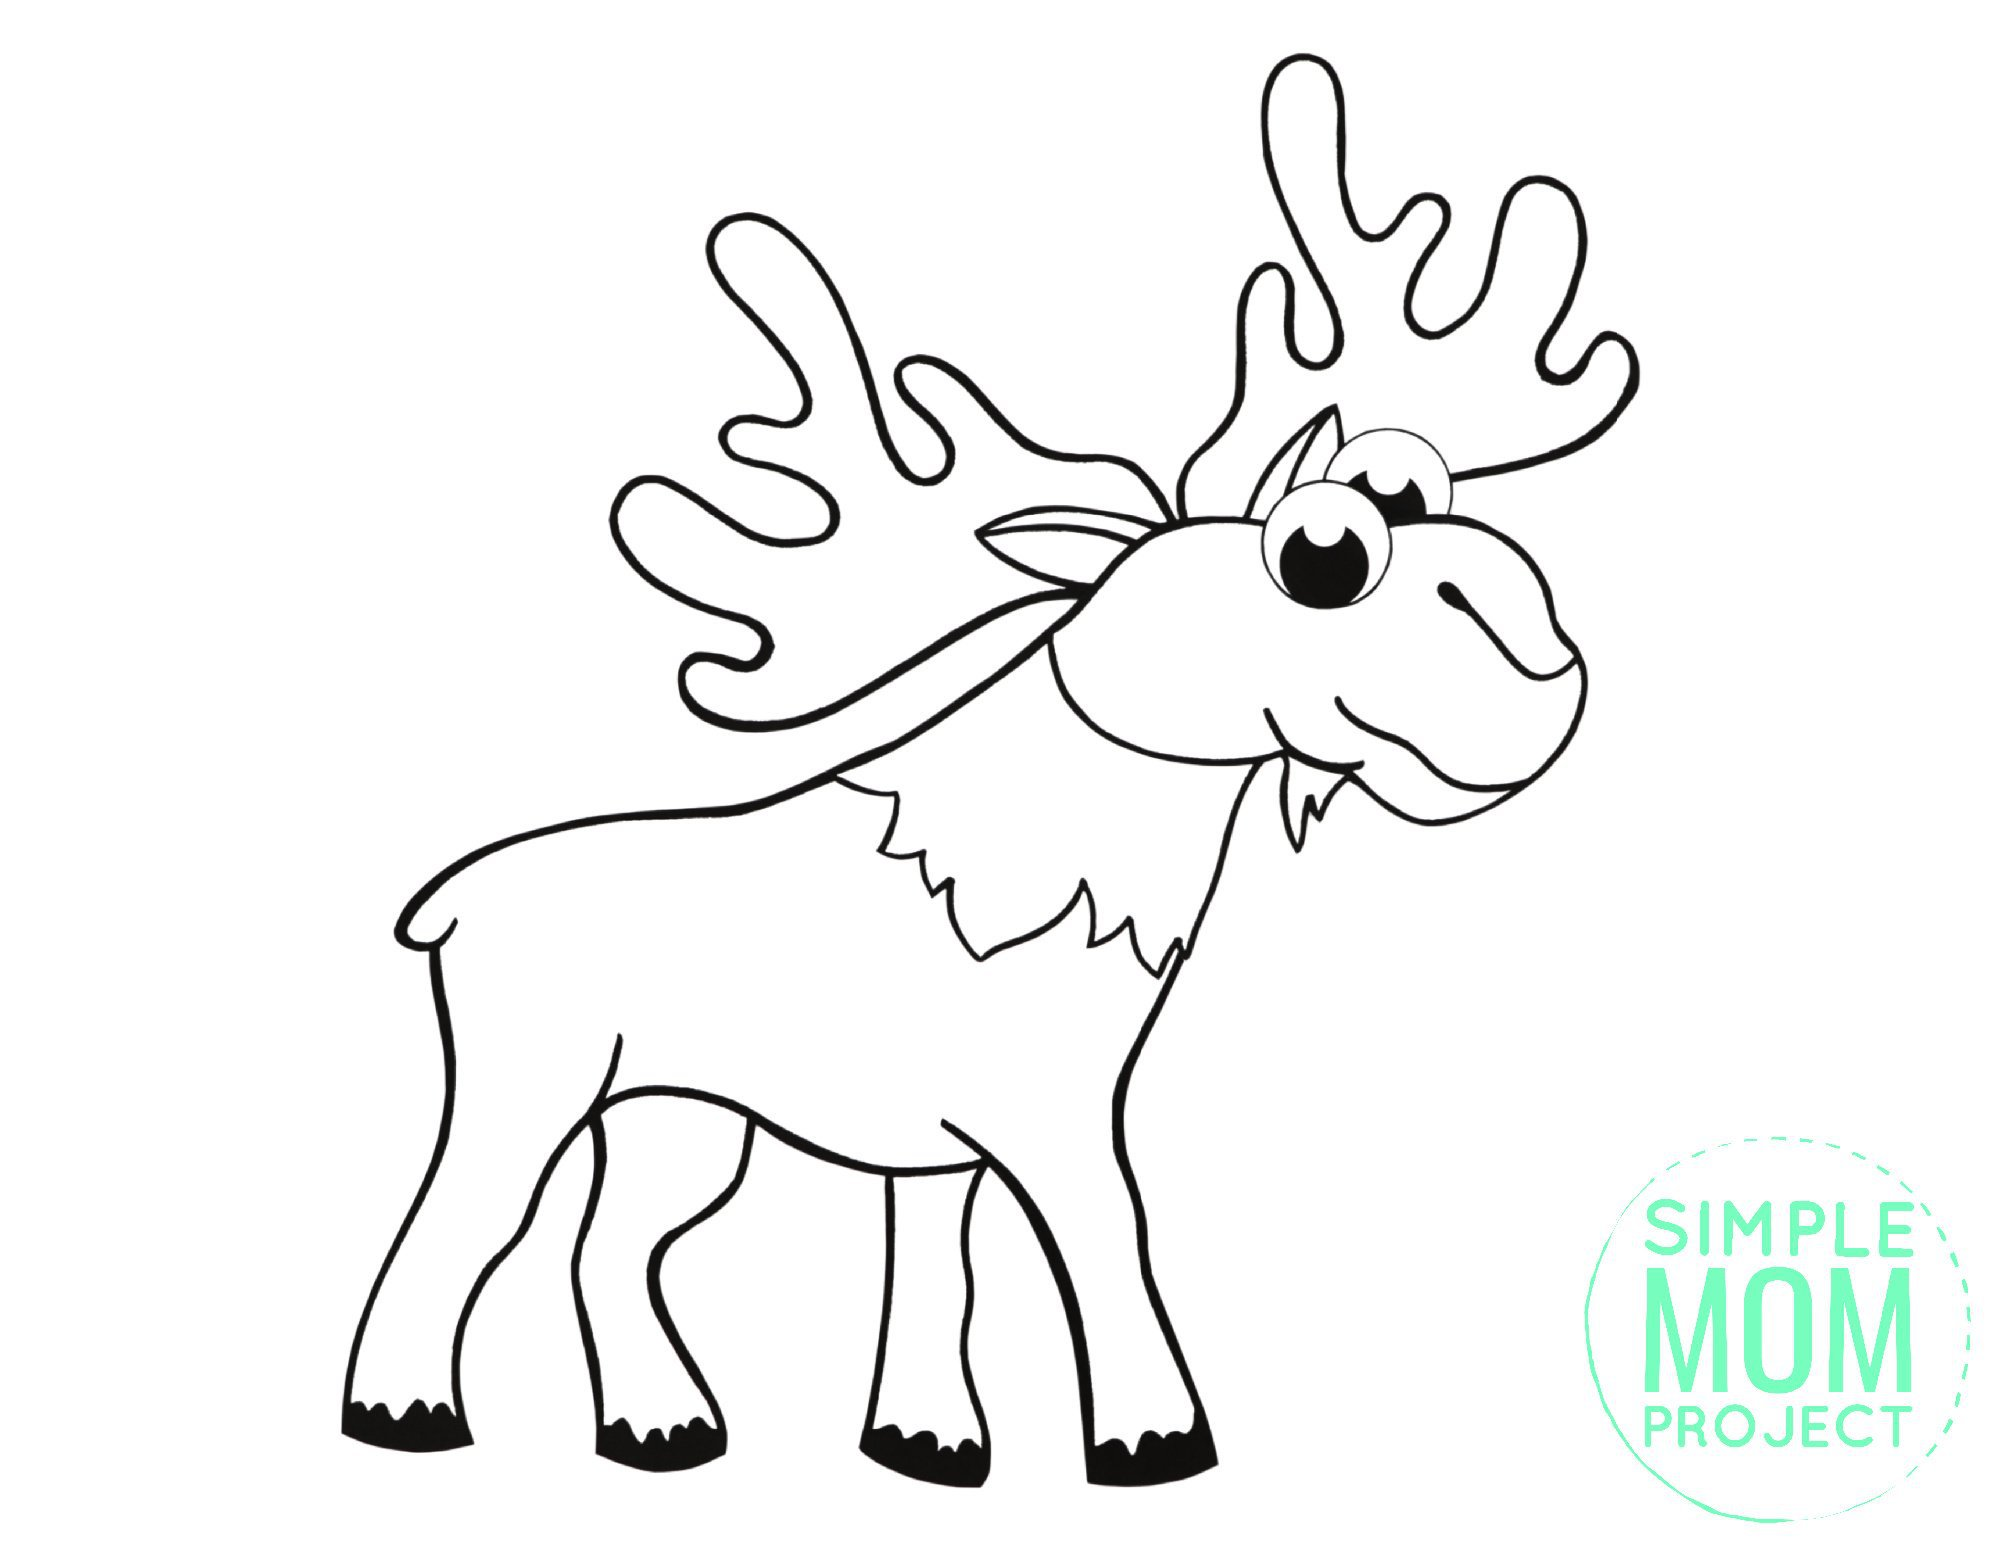 Free Printable Simple Arctic Animal Moose Coloring Page for kids preschoolers and toddlers